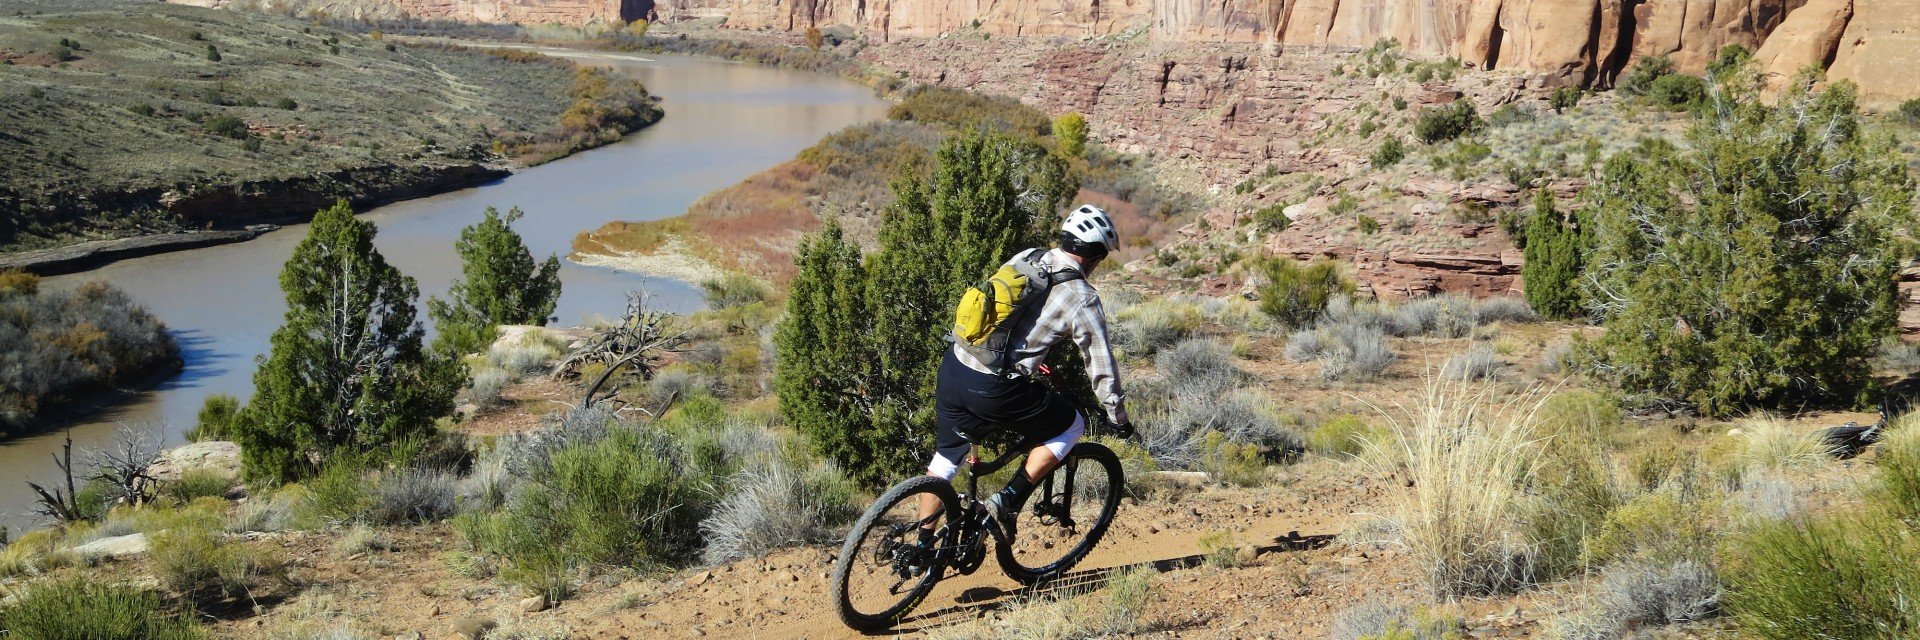 A rider speeds down a winding section on the Kokopelli Singletrack guided mountain bike tour